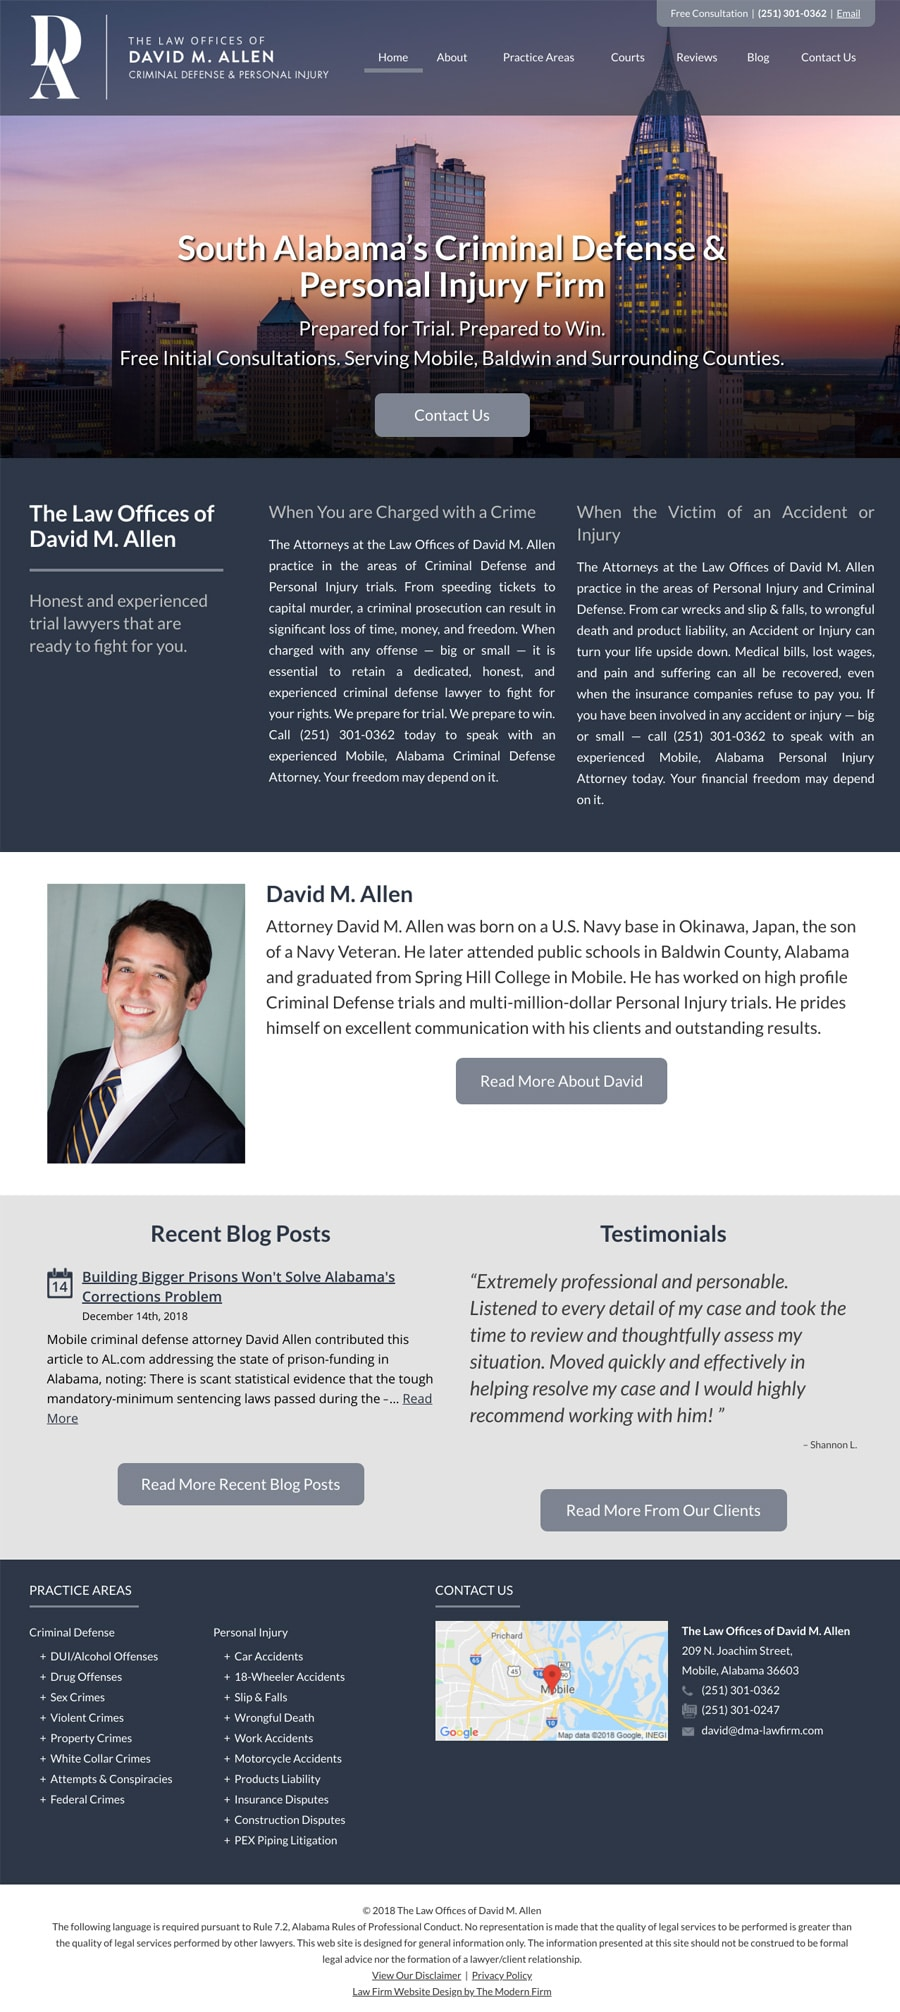 Law Firm Website Design for The Law Offices of David M. Allen